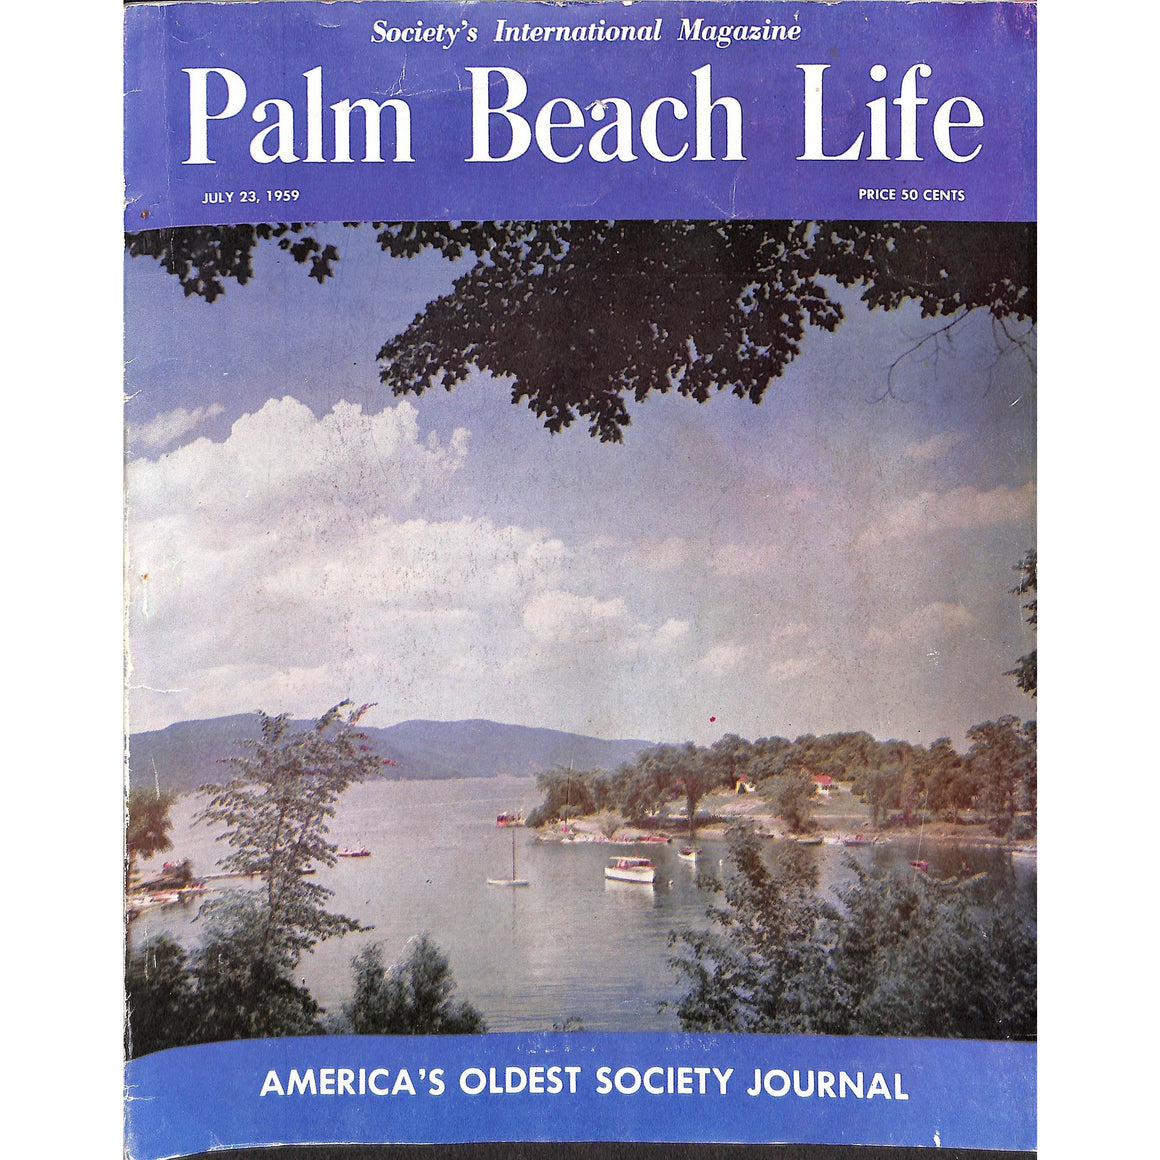 Palm Beach Life Magazine July 23, 1959